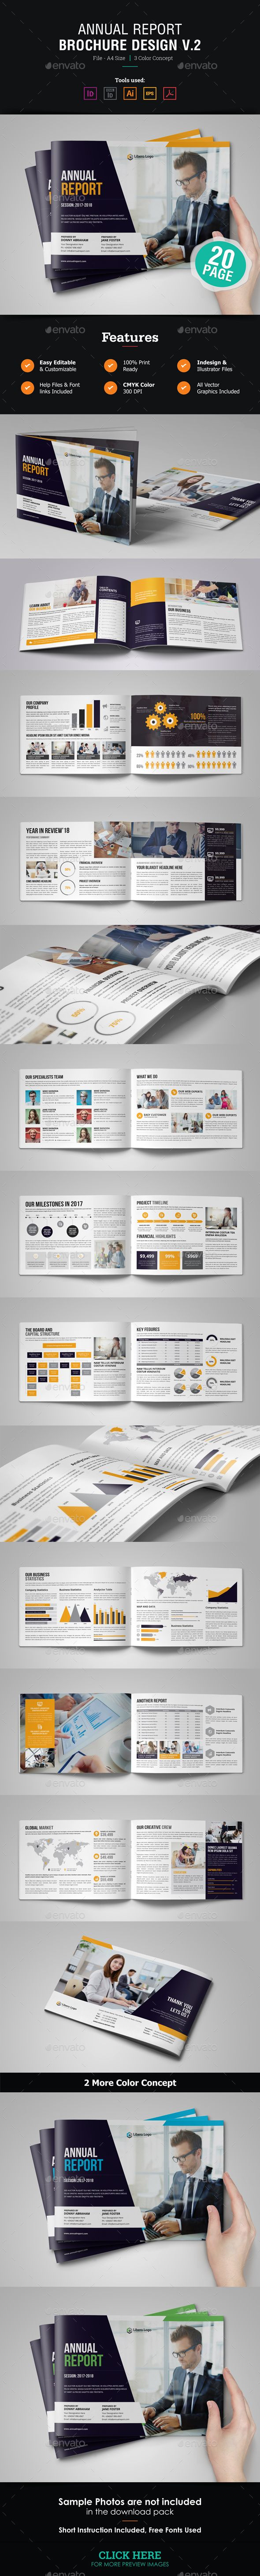 Annual Report Brochure Template Vector EPS, InDesign INDD, AI ...